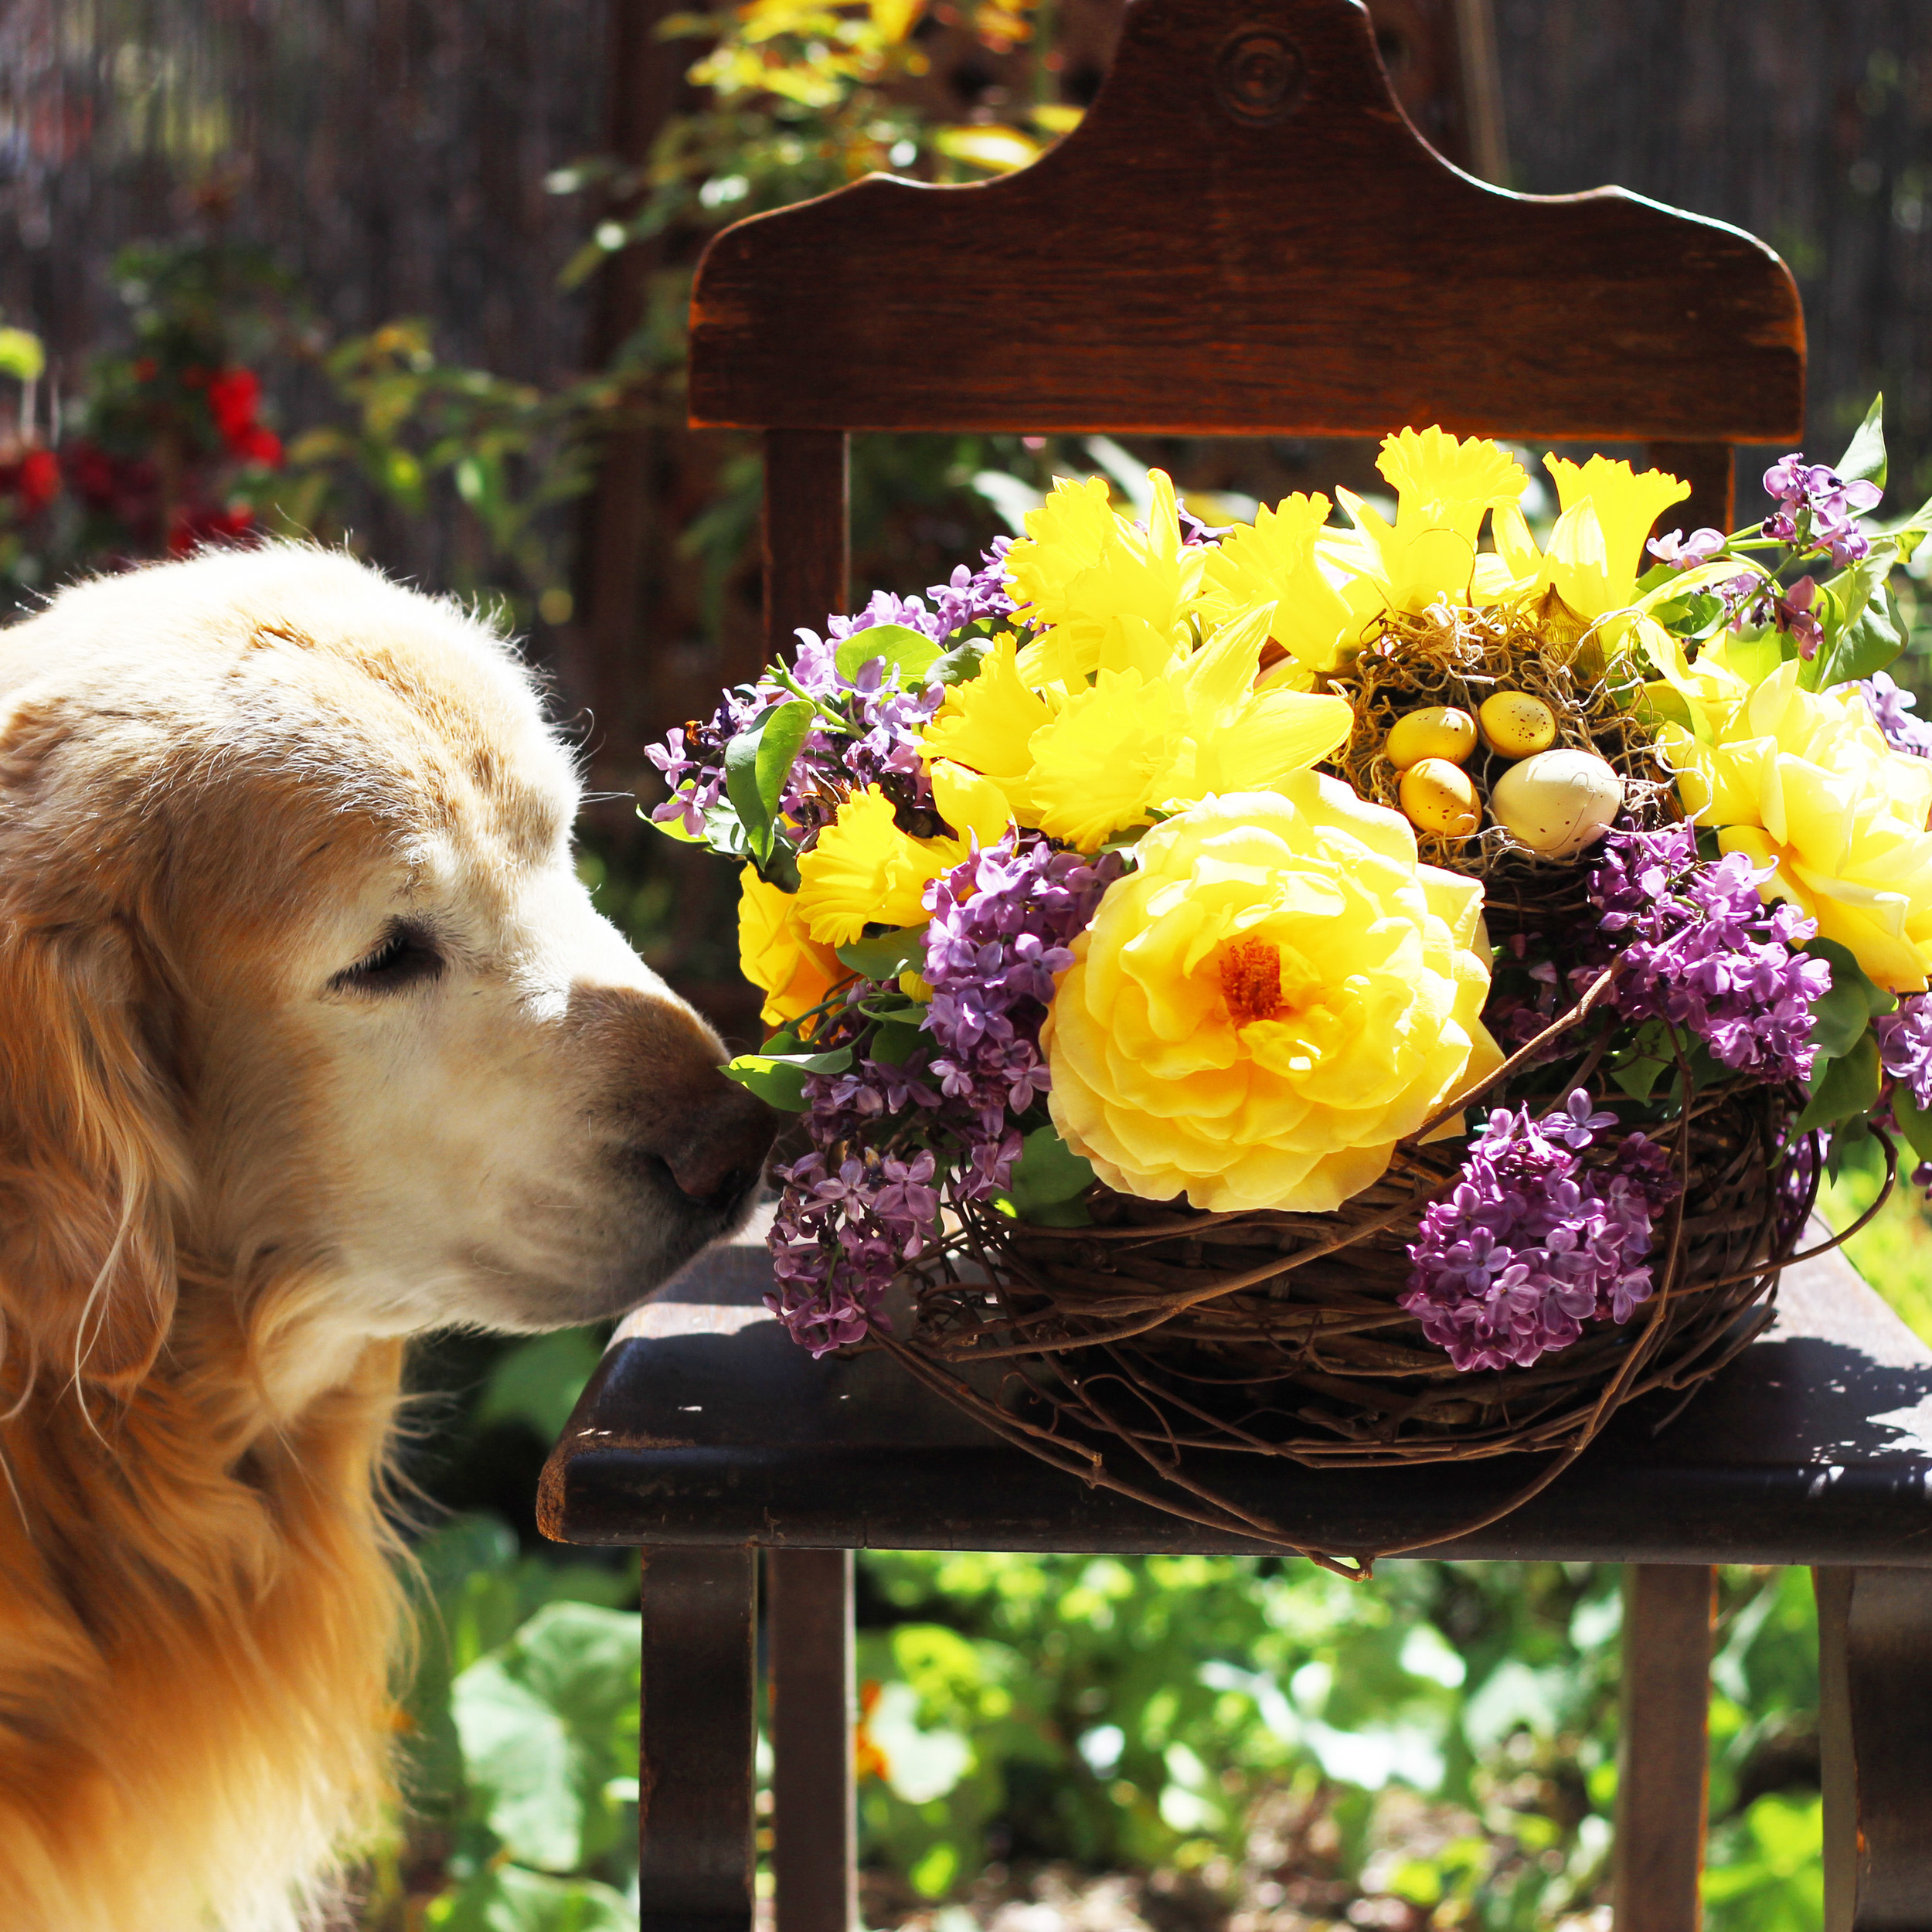 """Buddy says, """"Oui oui, these smell sweet to me!"""""""